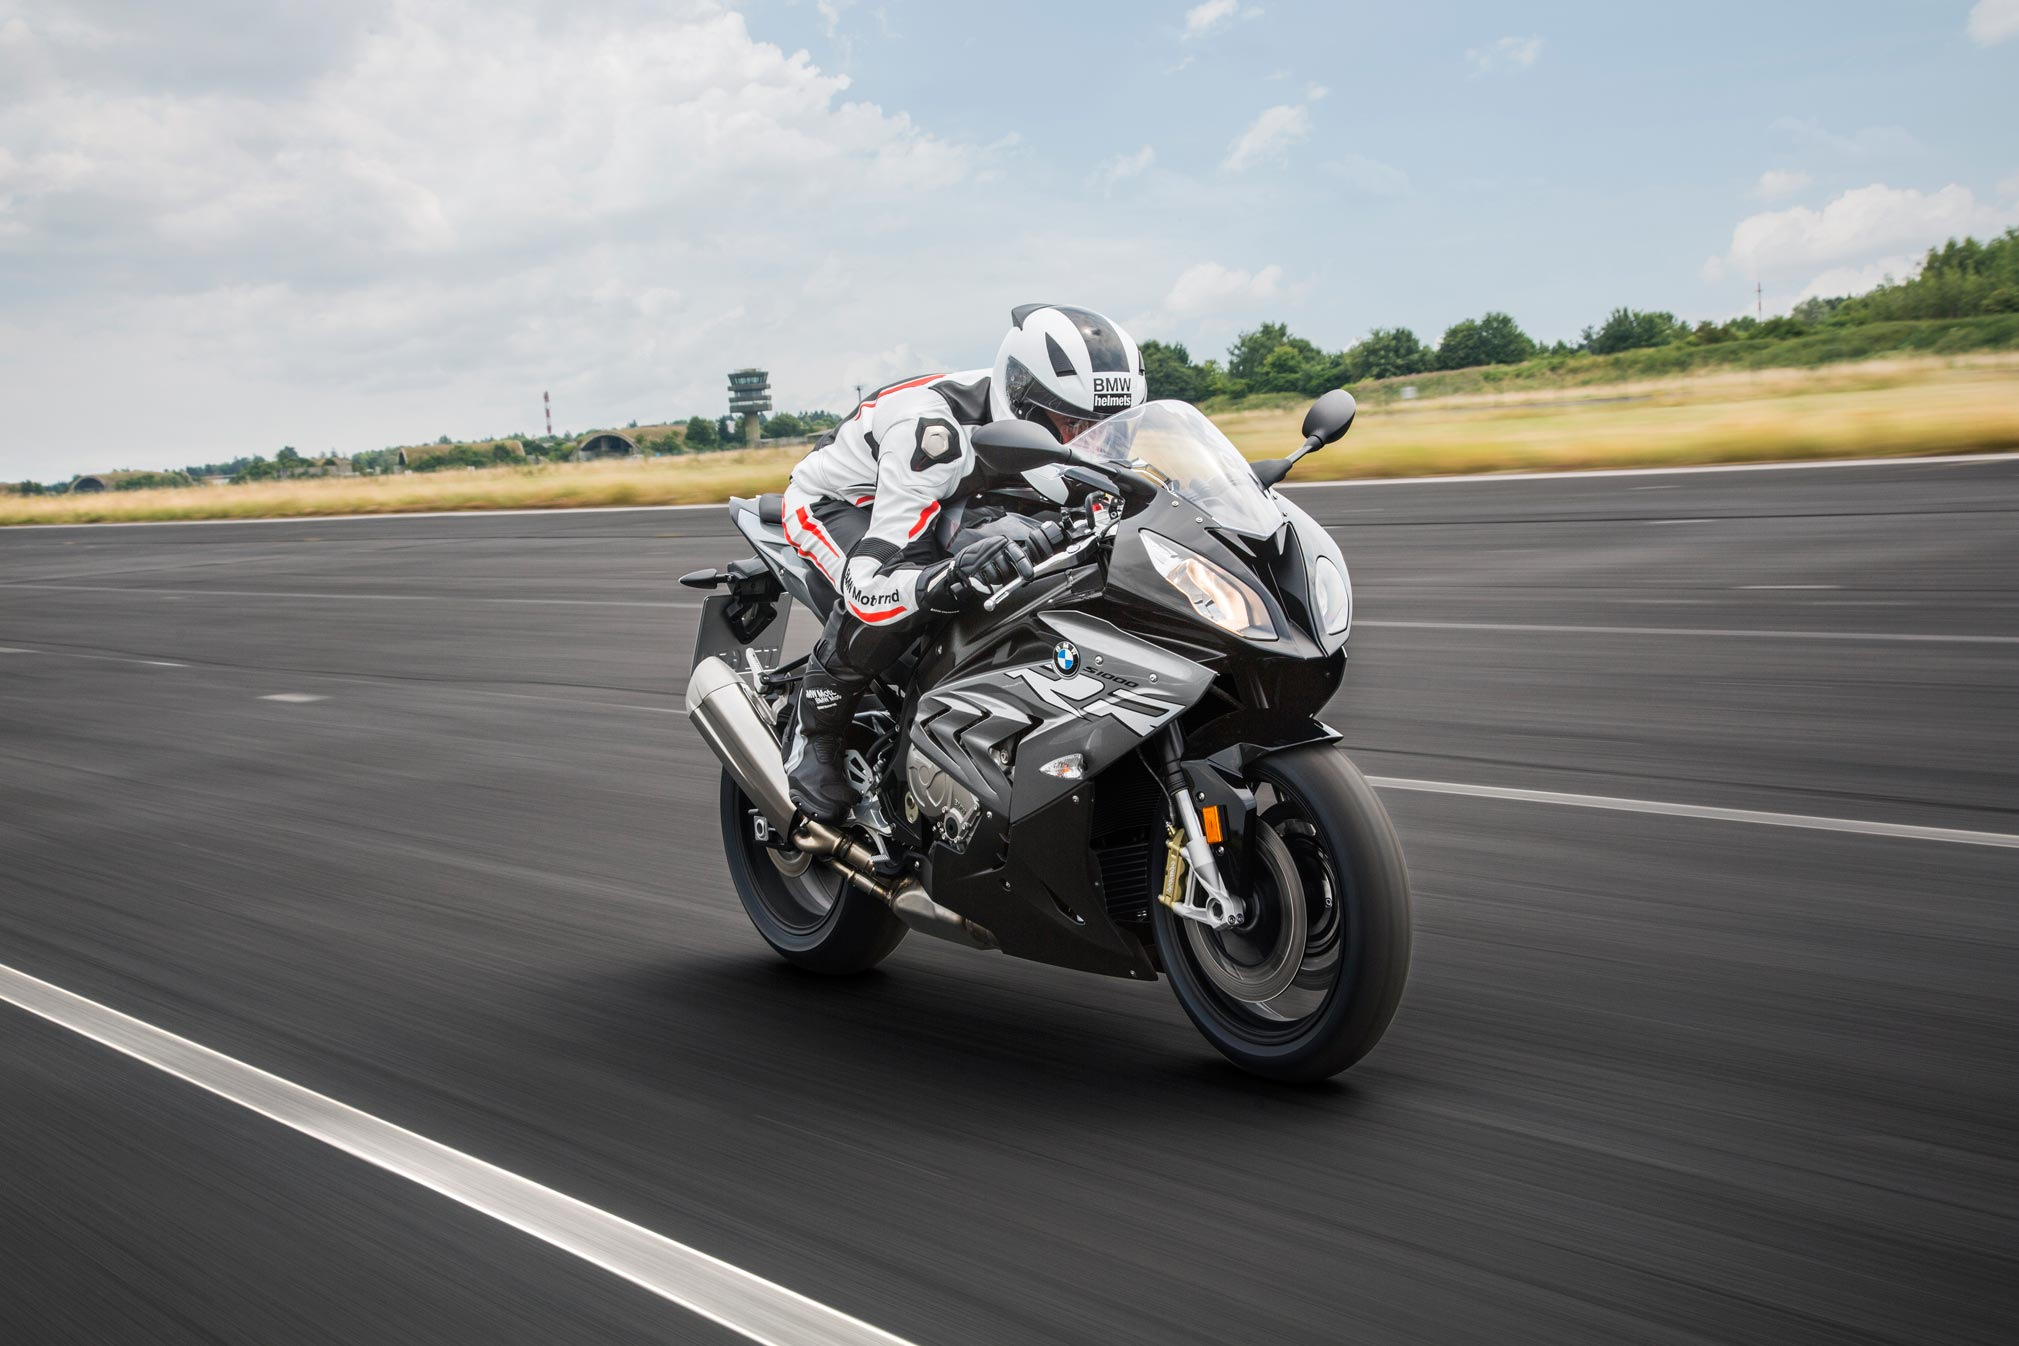 2019 Bmw S1000rr Guide Totalmotorcycle